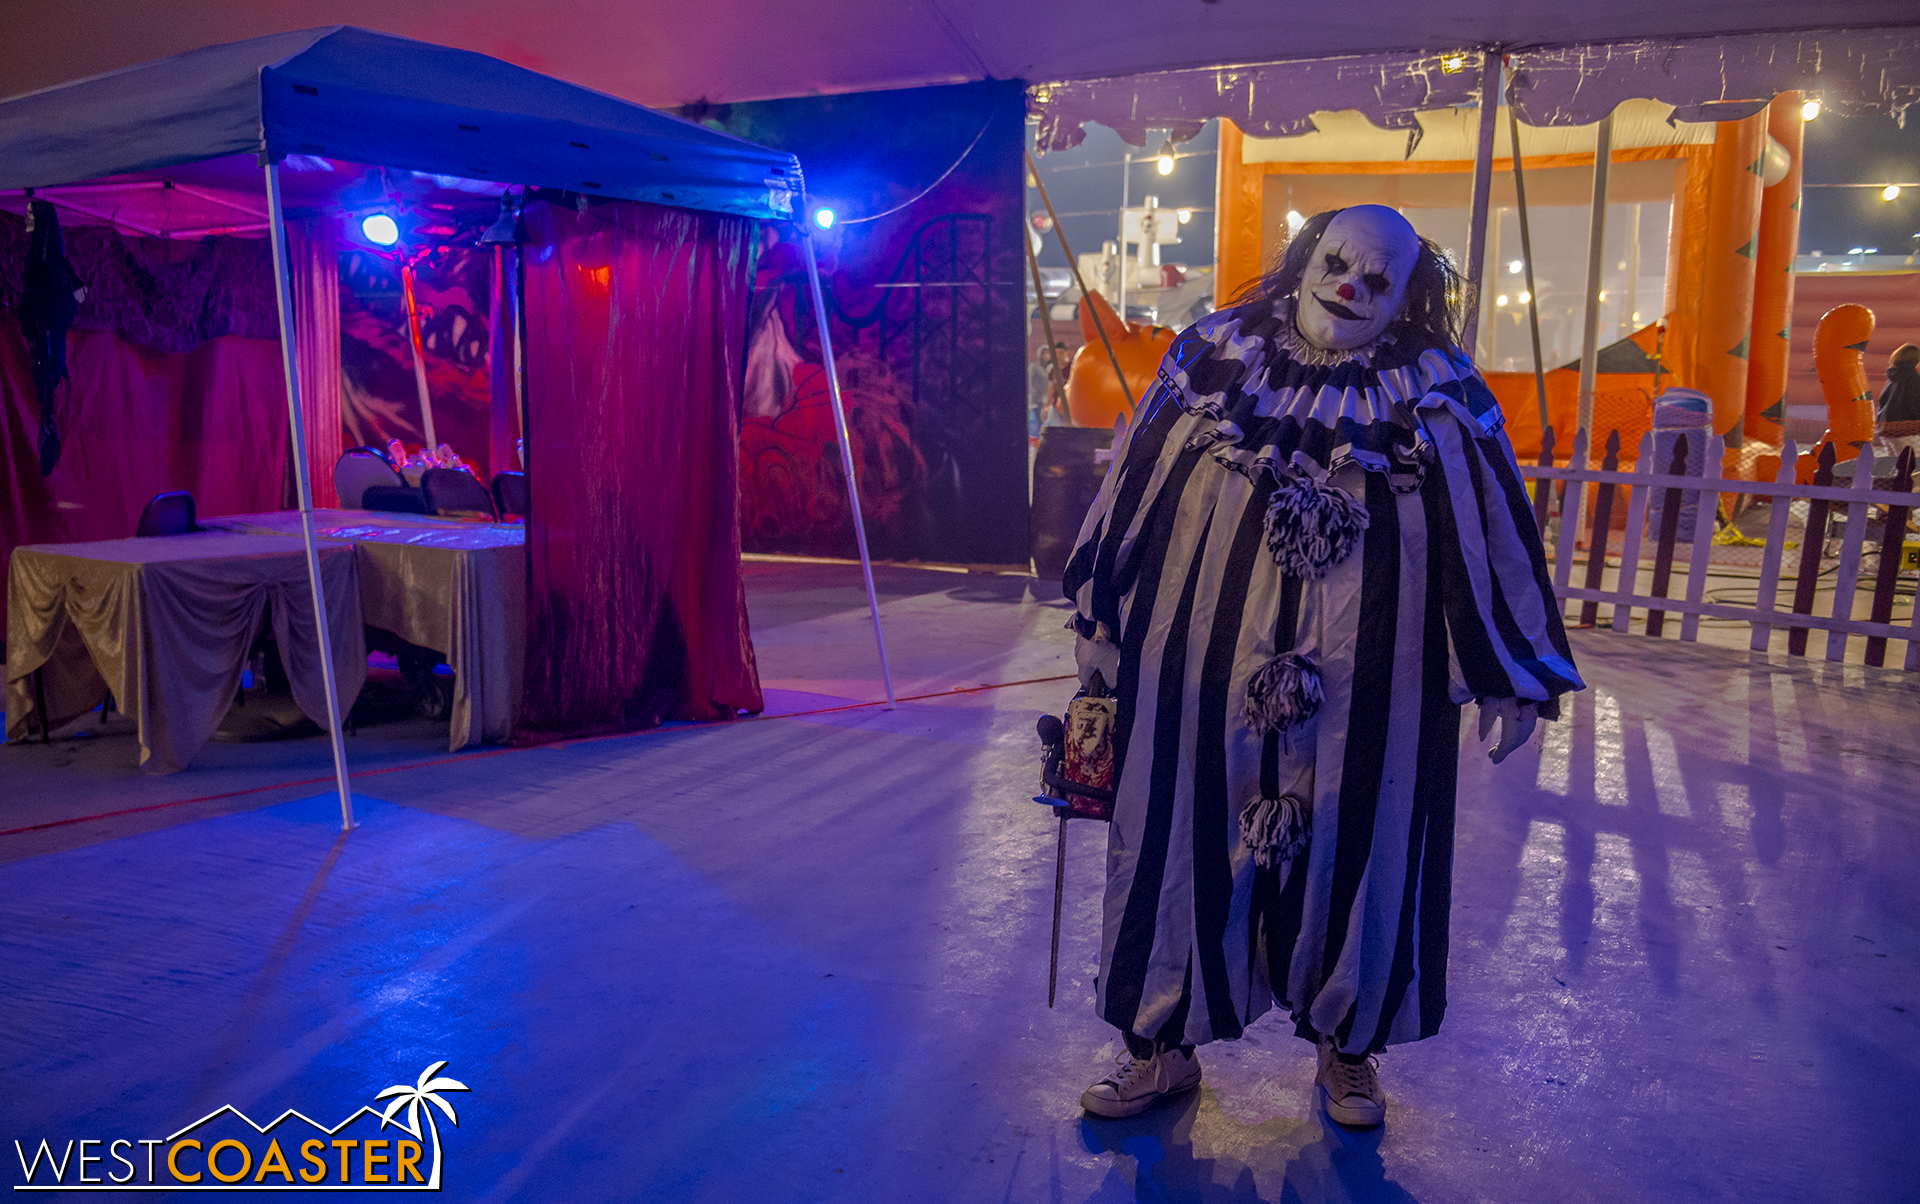 A chainsaw-wielding clown is one of several carnival characters who terrorize.